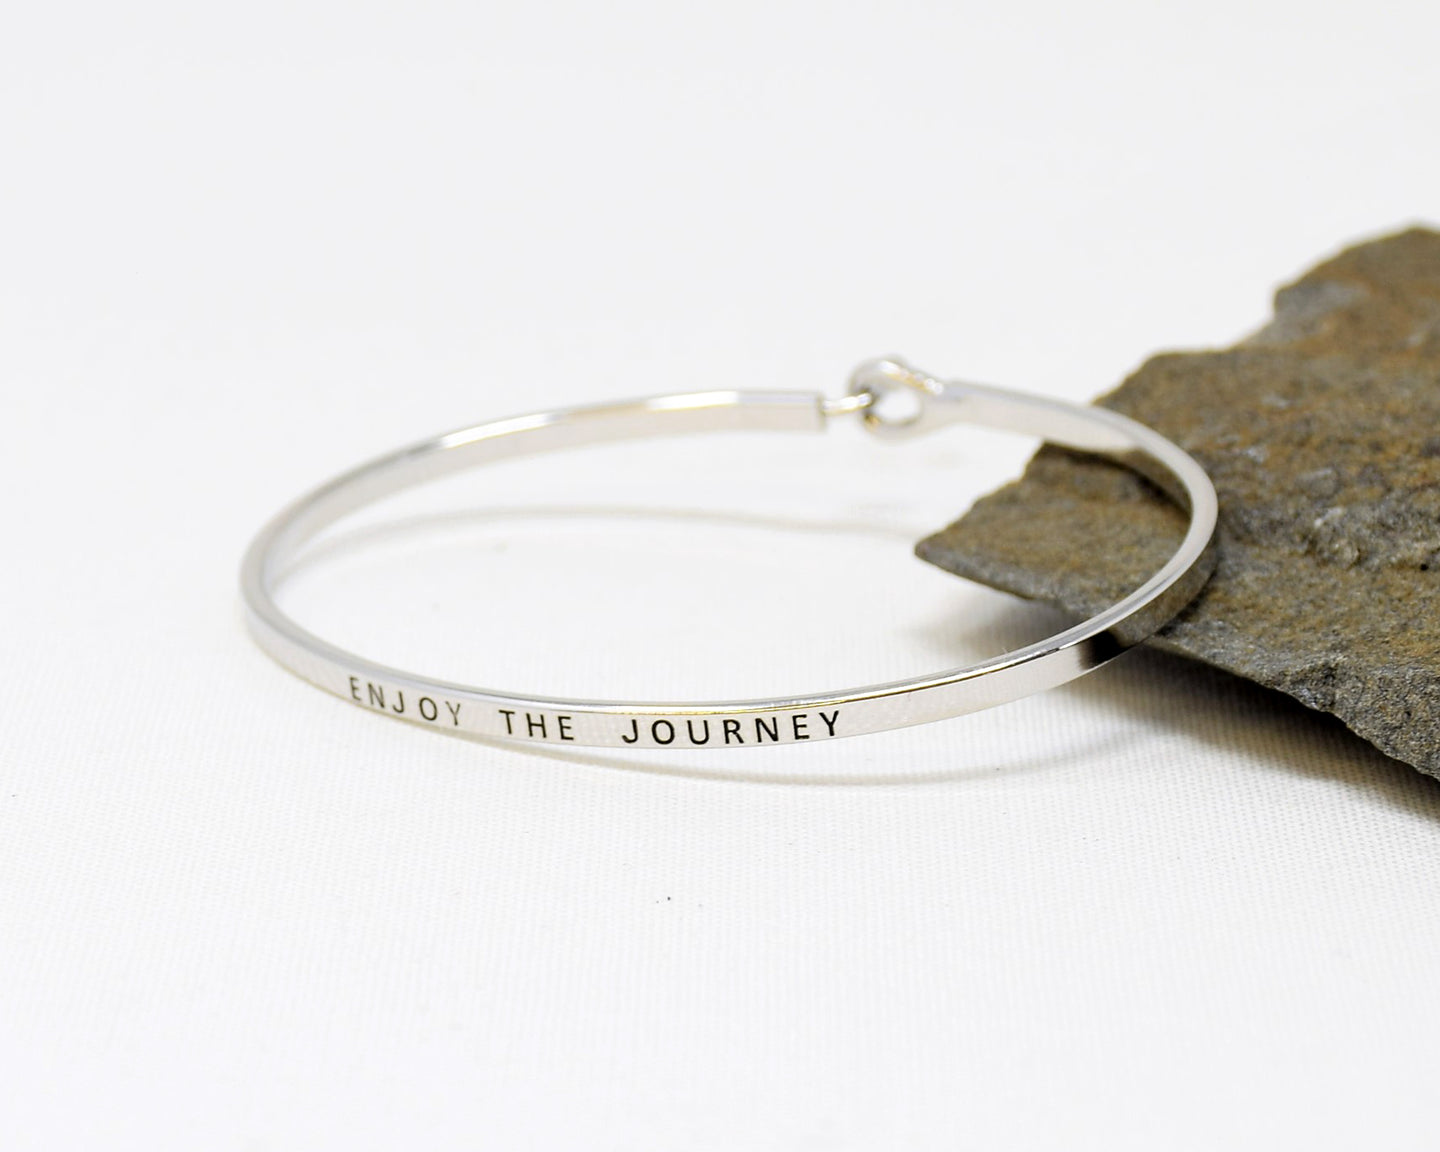 Enjoy the journey - Bracelet Bangle with Message for Women Girl Daughter Wife Holiday Anniversary Special Gift